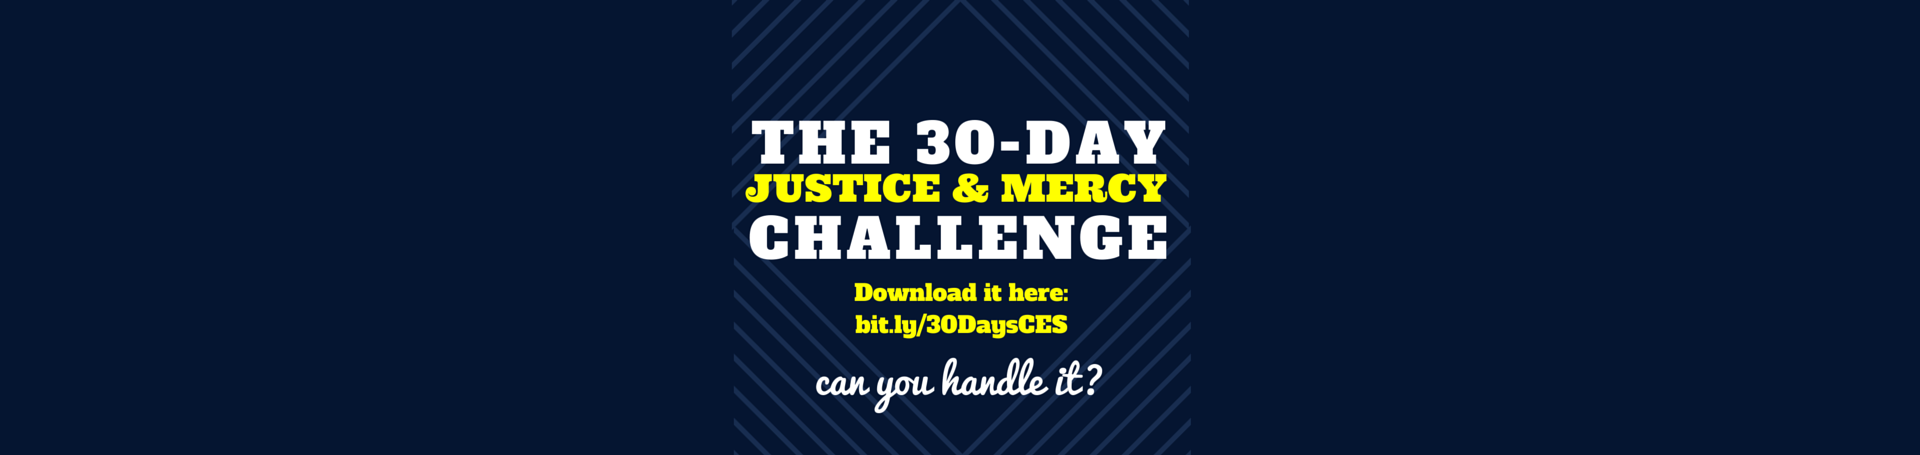 THE-30-DAY-CHALLENGE-slider1